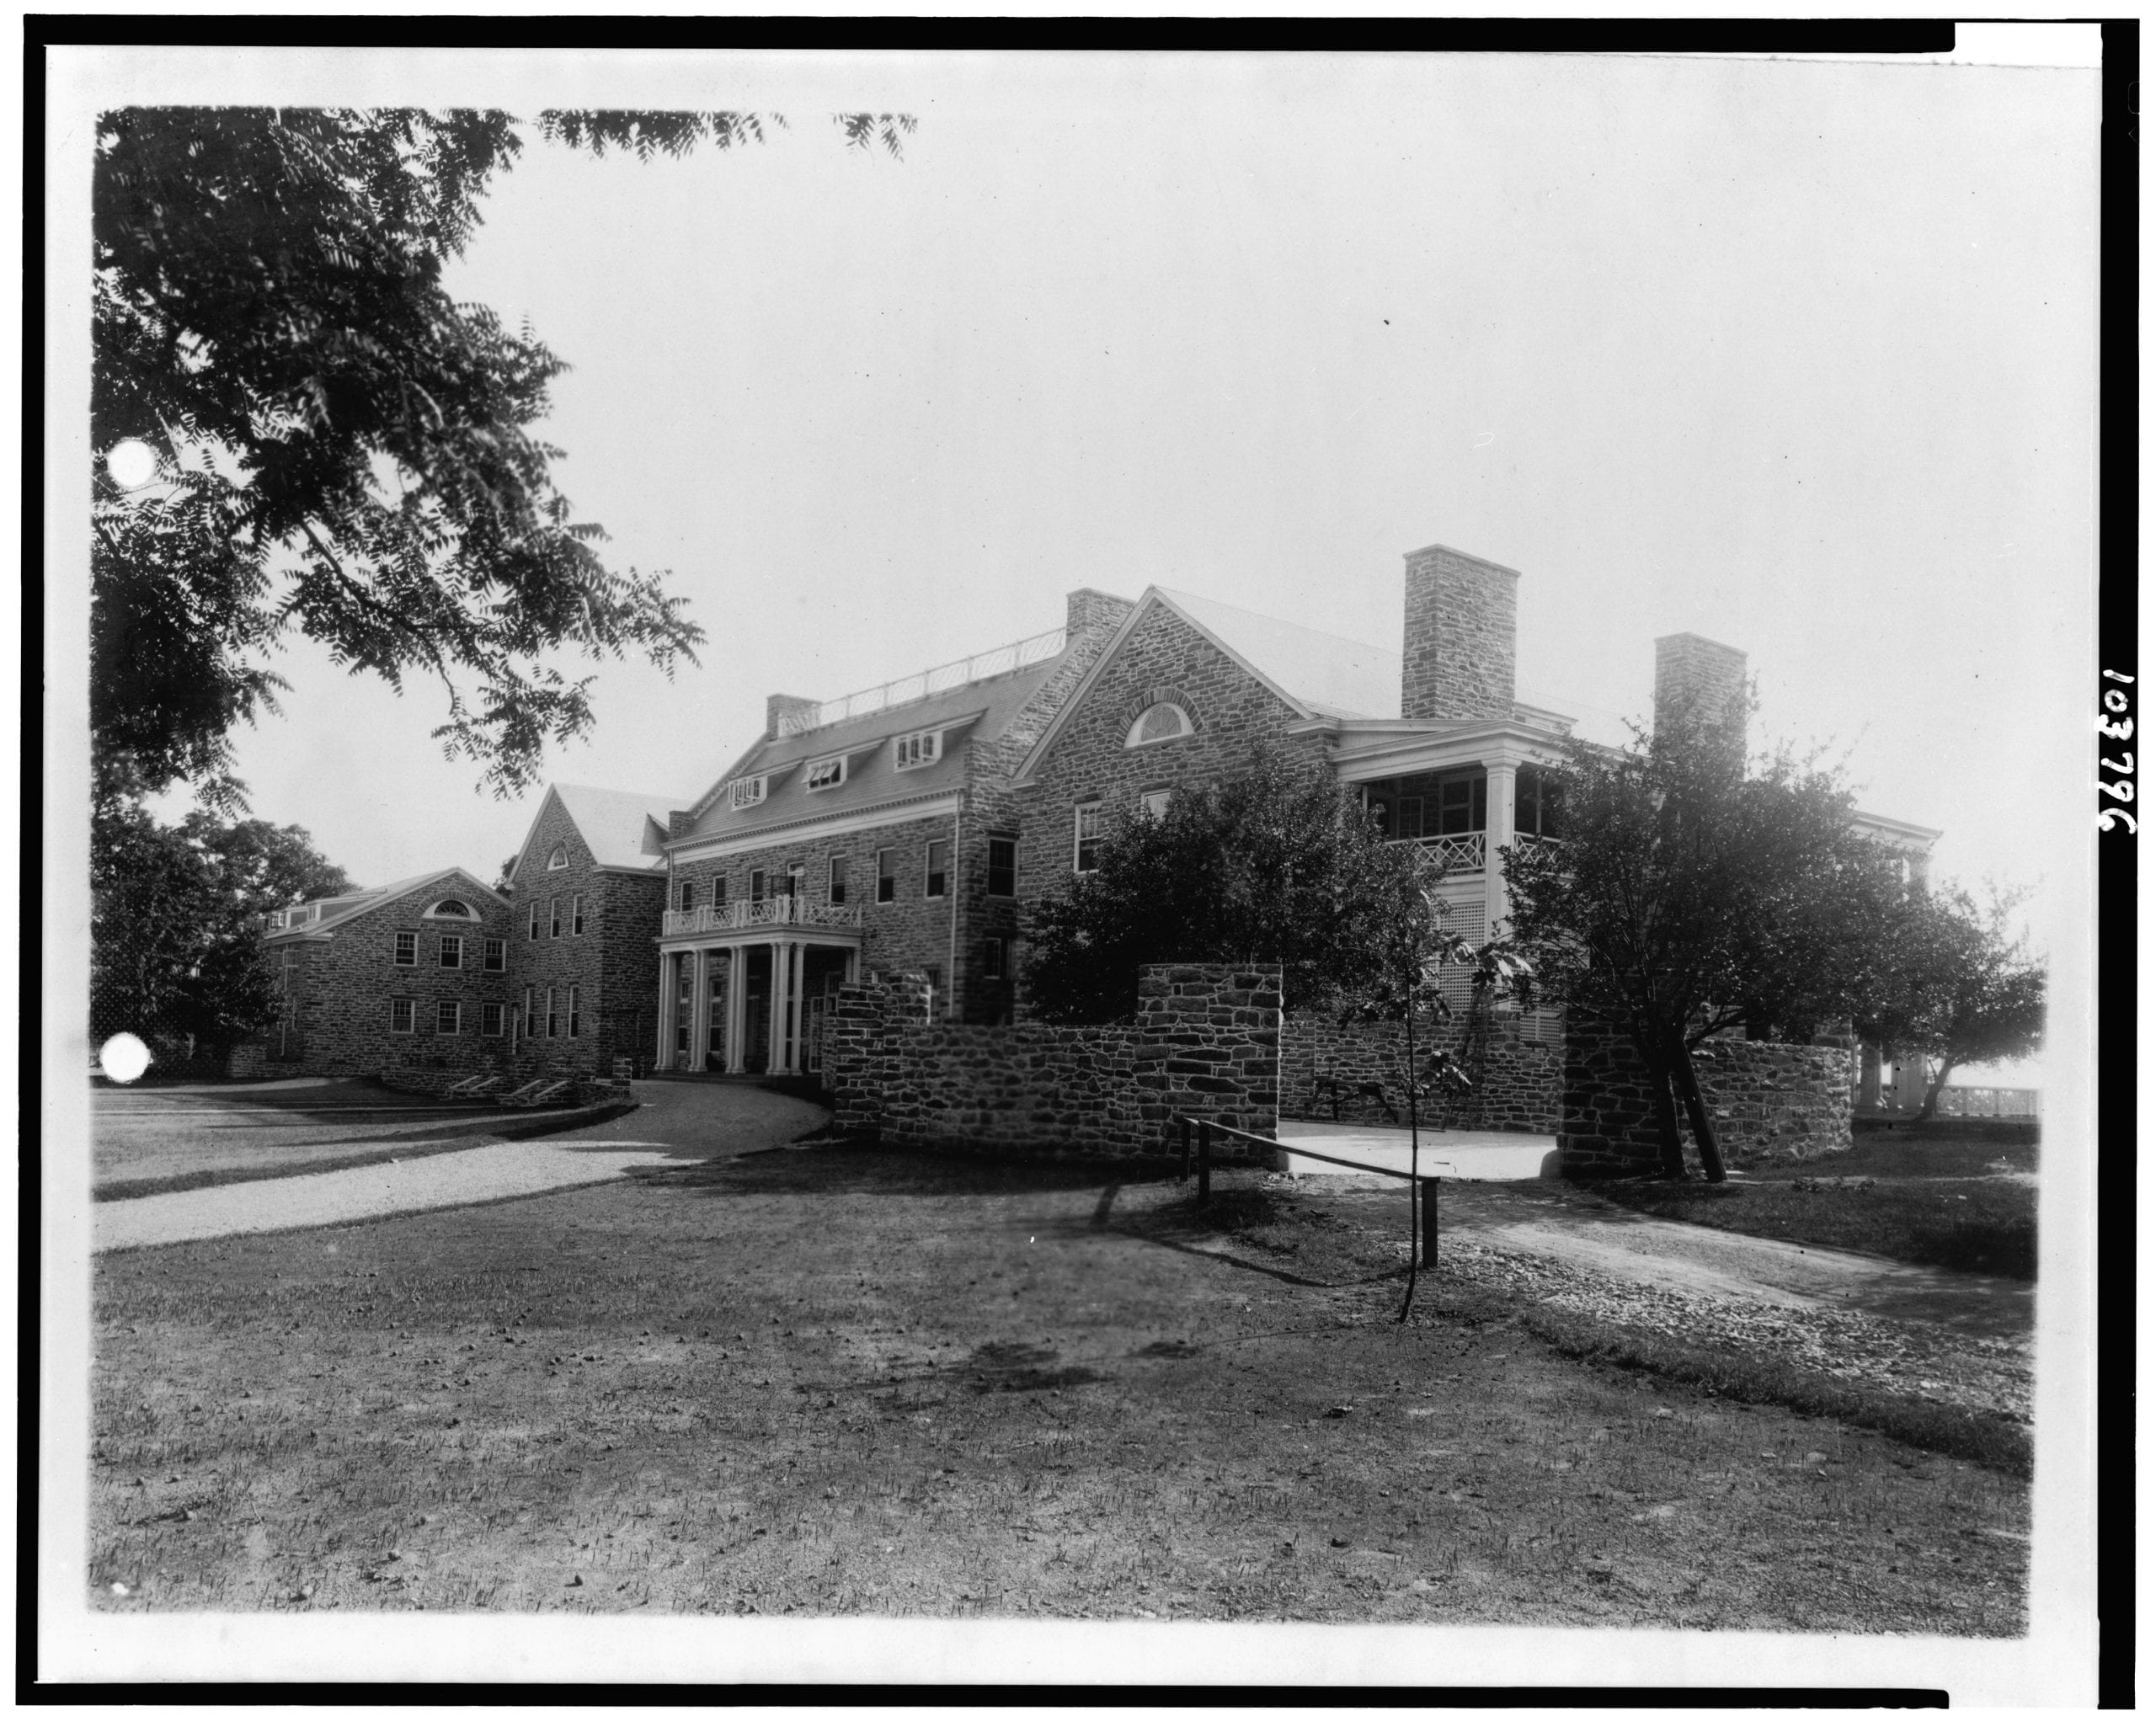 Photos of the Chevy Chase Club in the 1920s